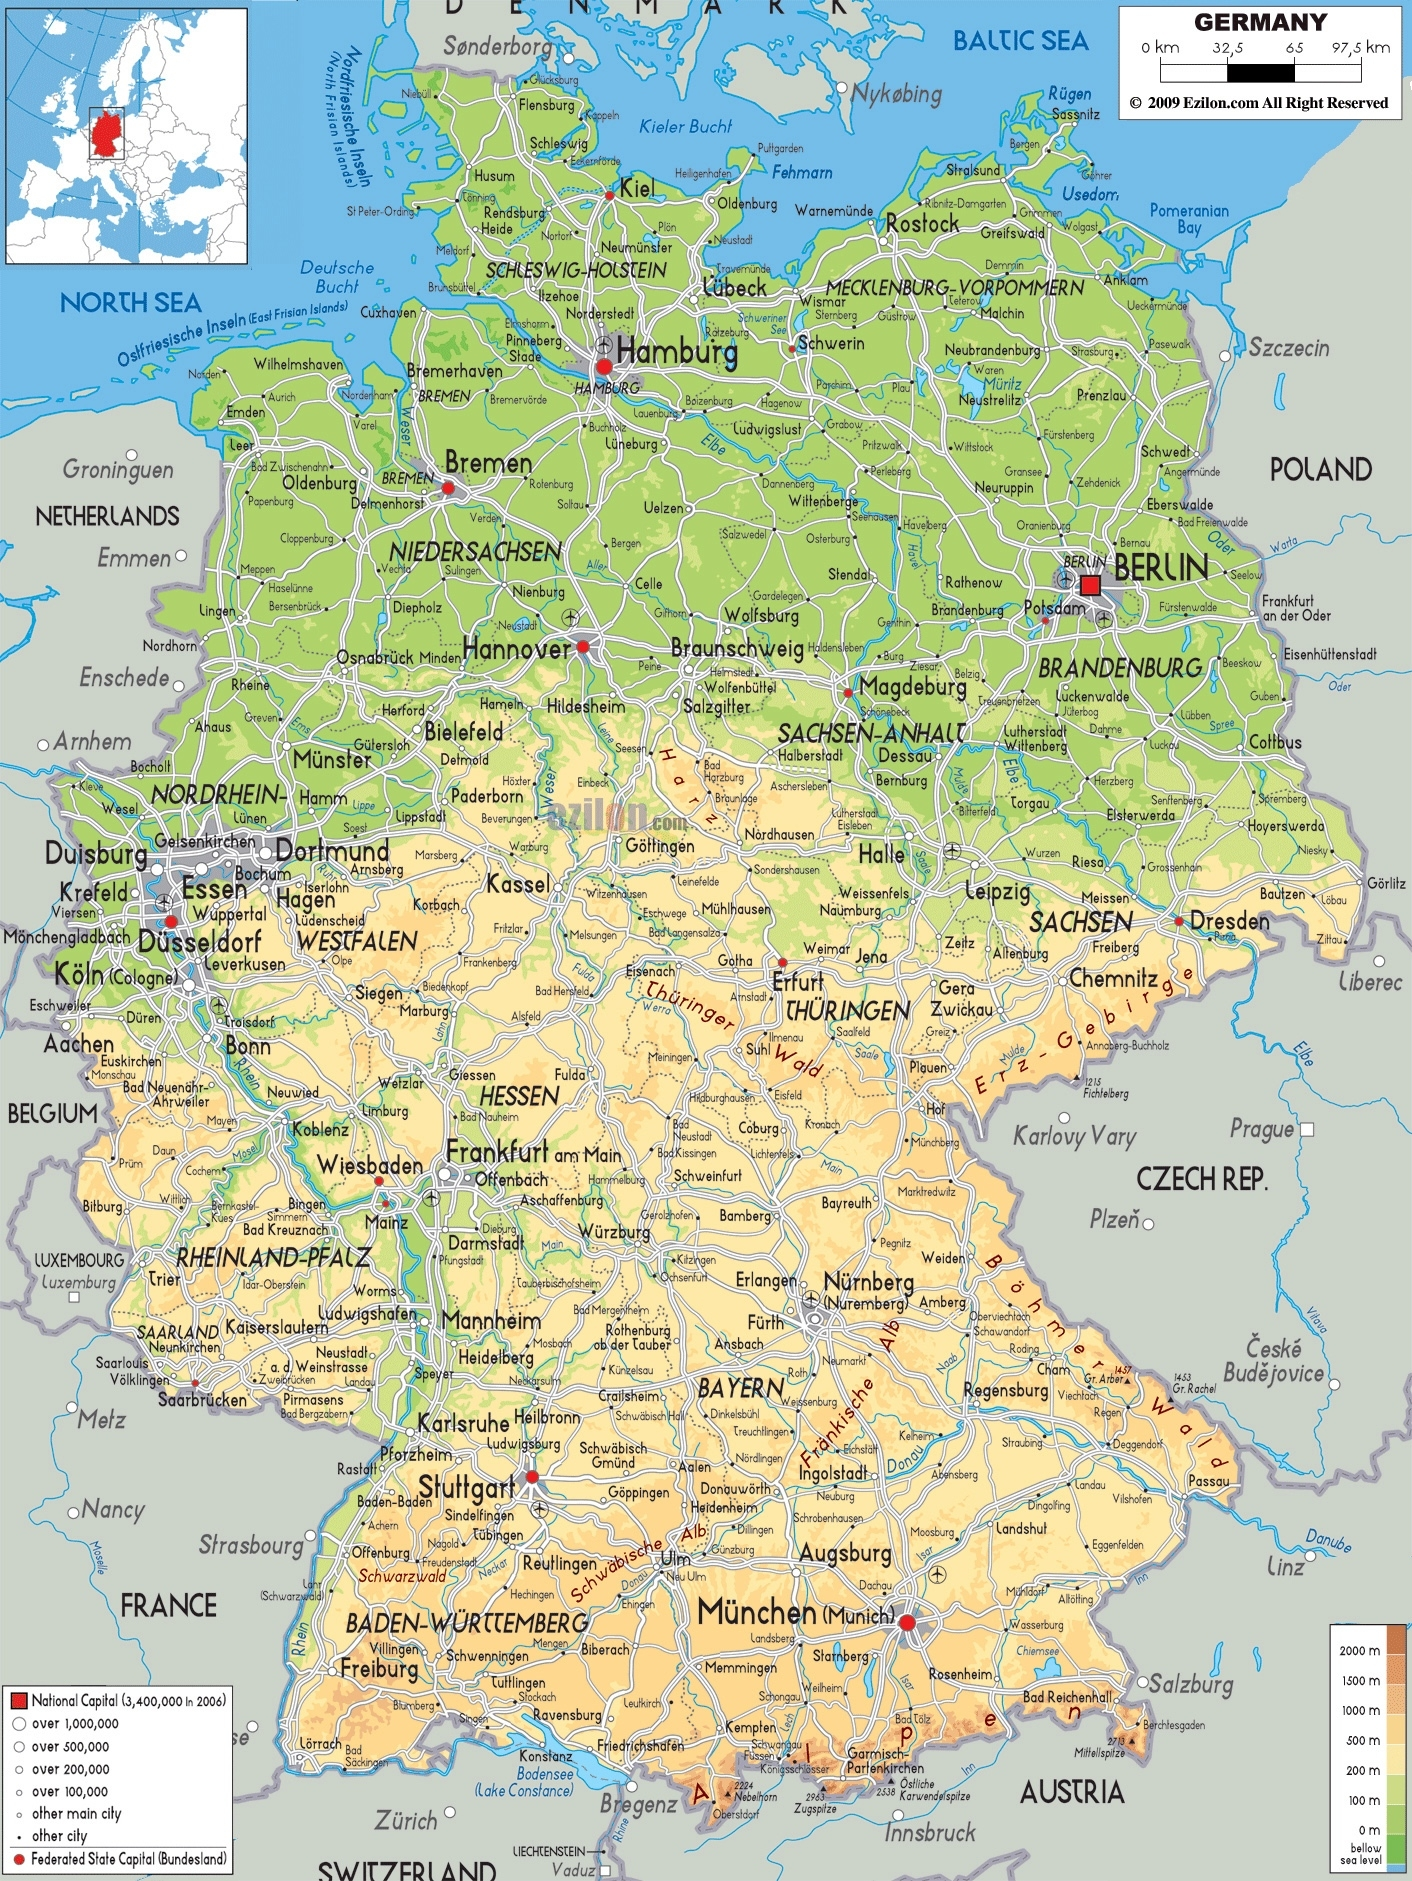 Large Physical Map Of Germany With Roads, Cities And Airports in Germany On World Map Physical